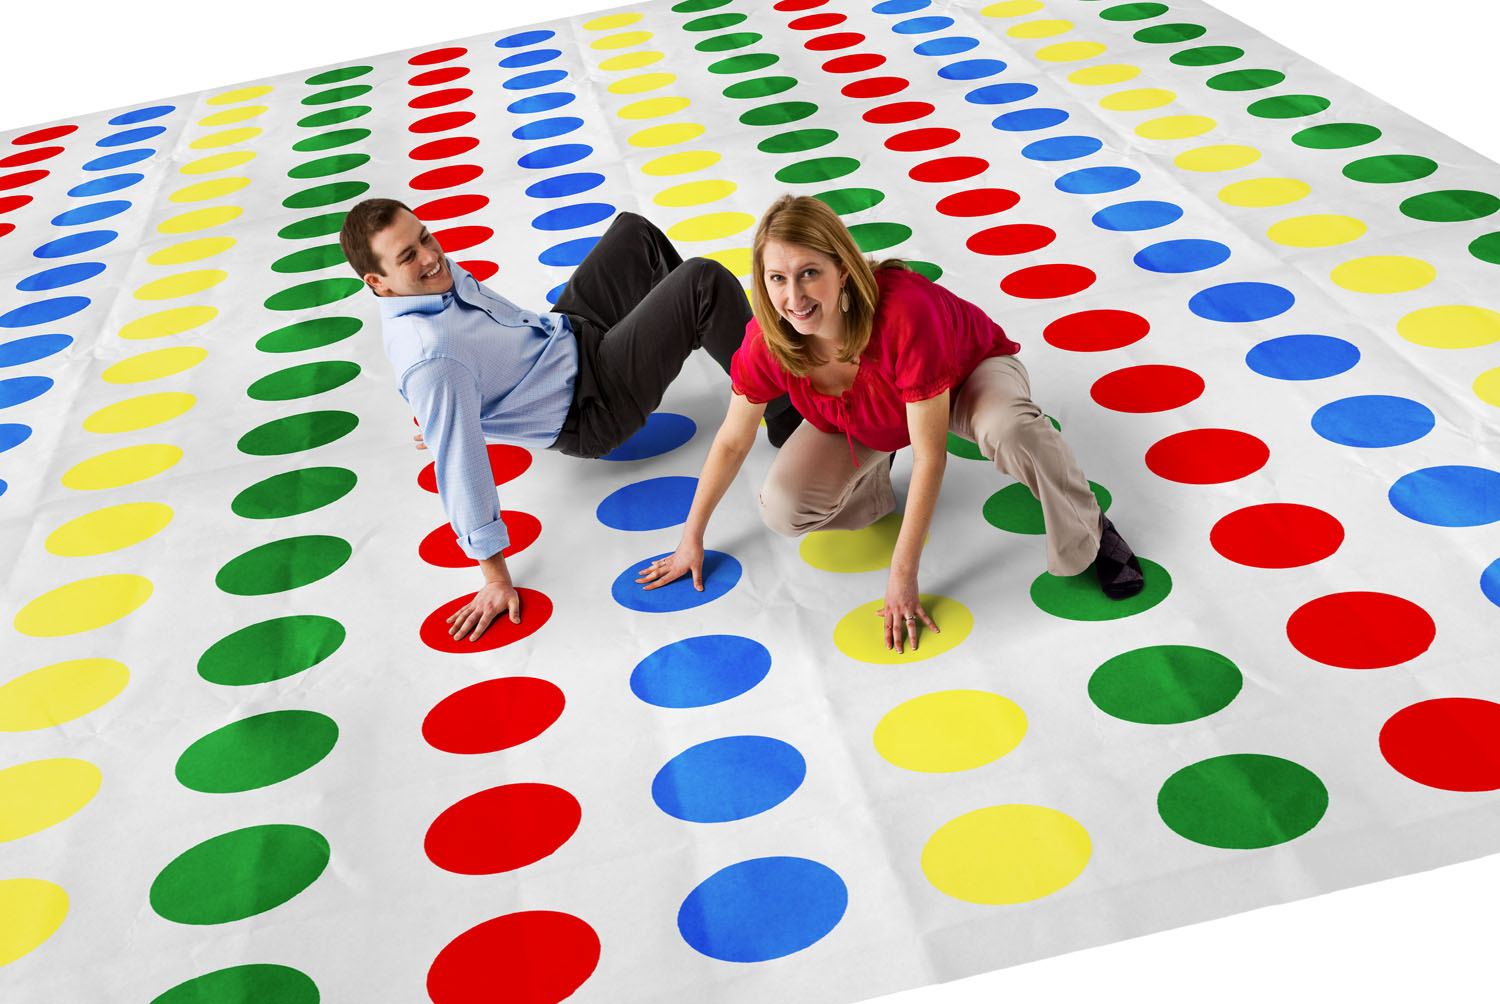 A game of twister by snahbrandy 1